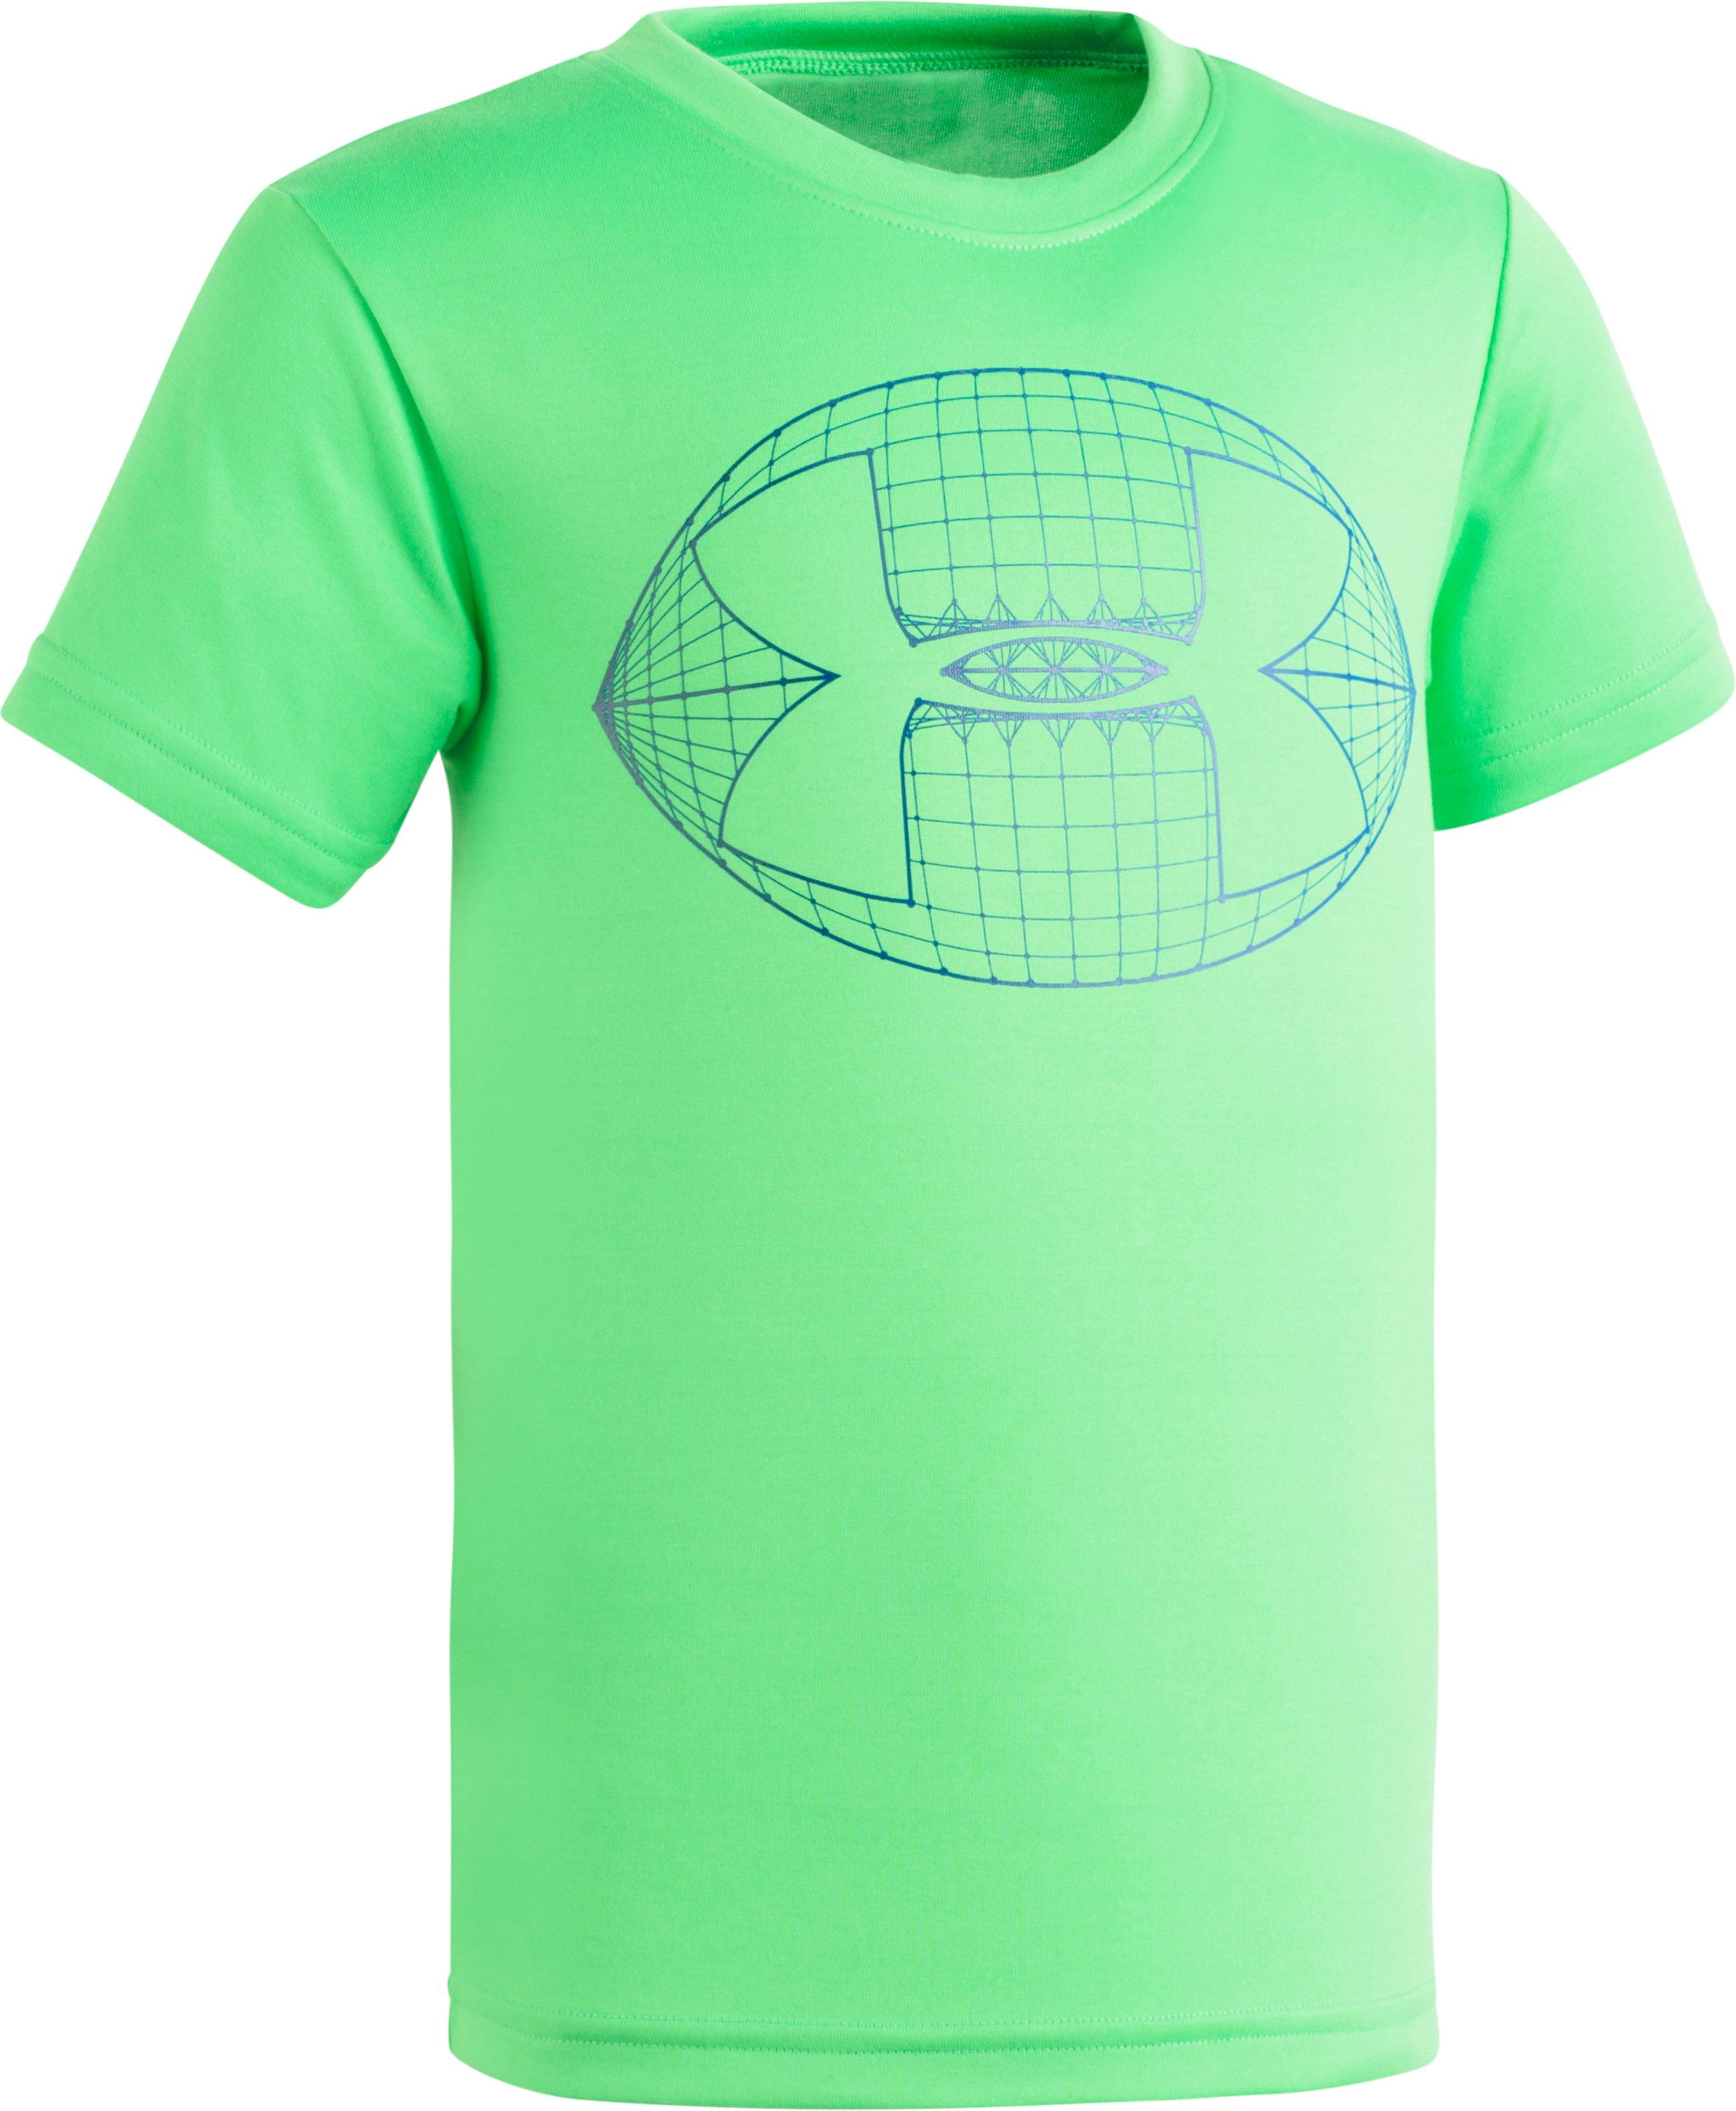 Boys' Pre-School UA Football Big Logo Short Sleeve, LIME TWIST